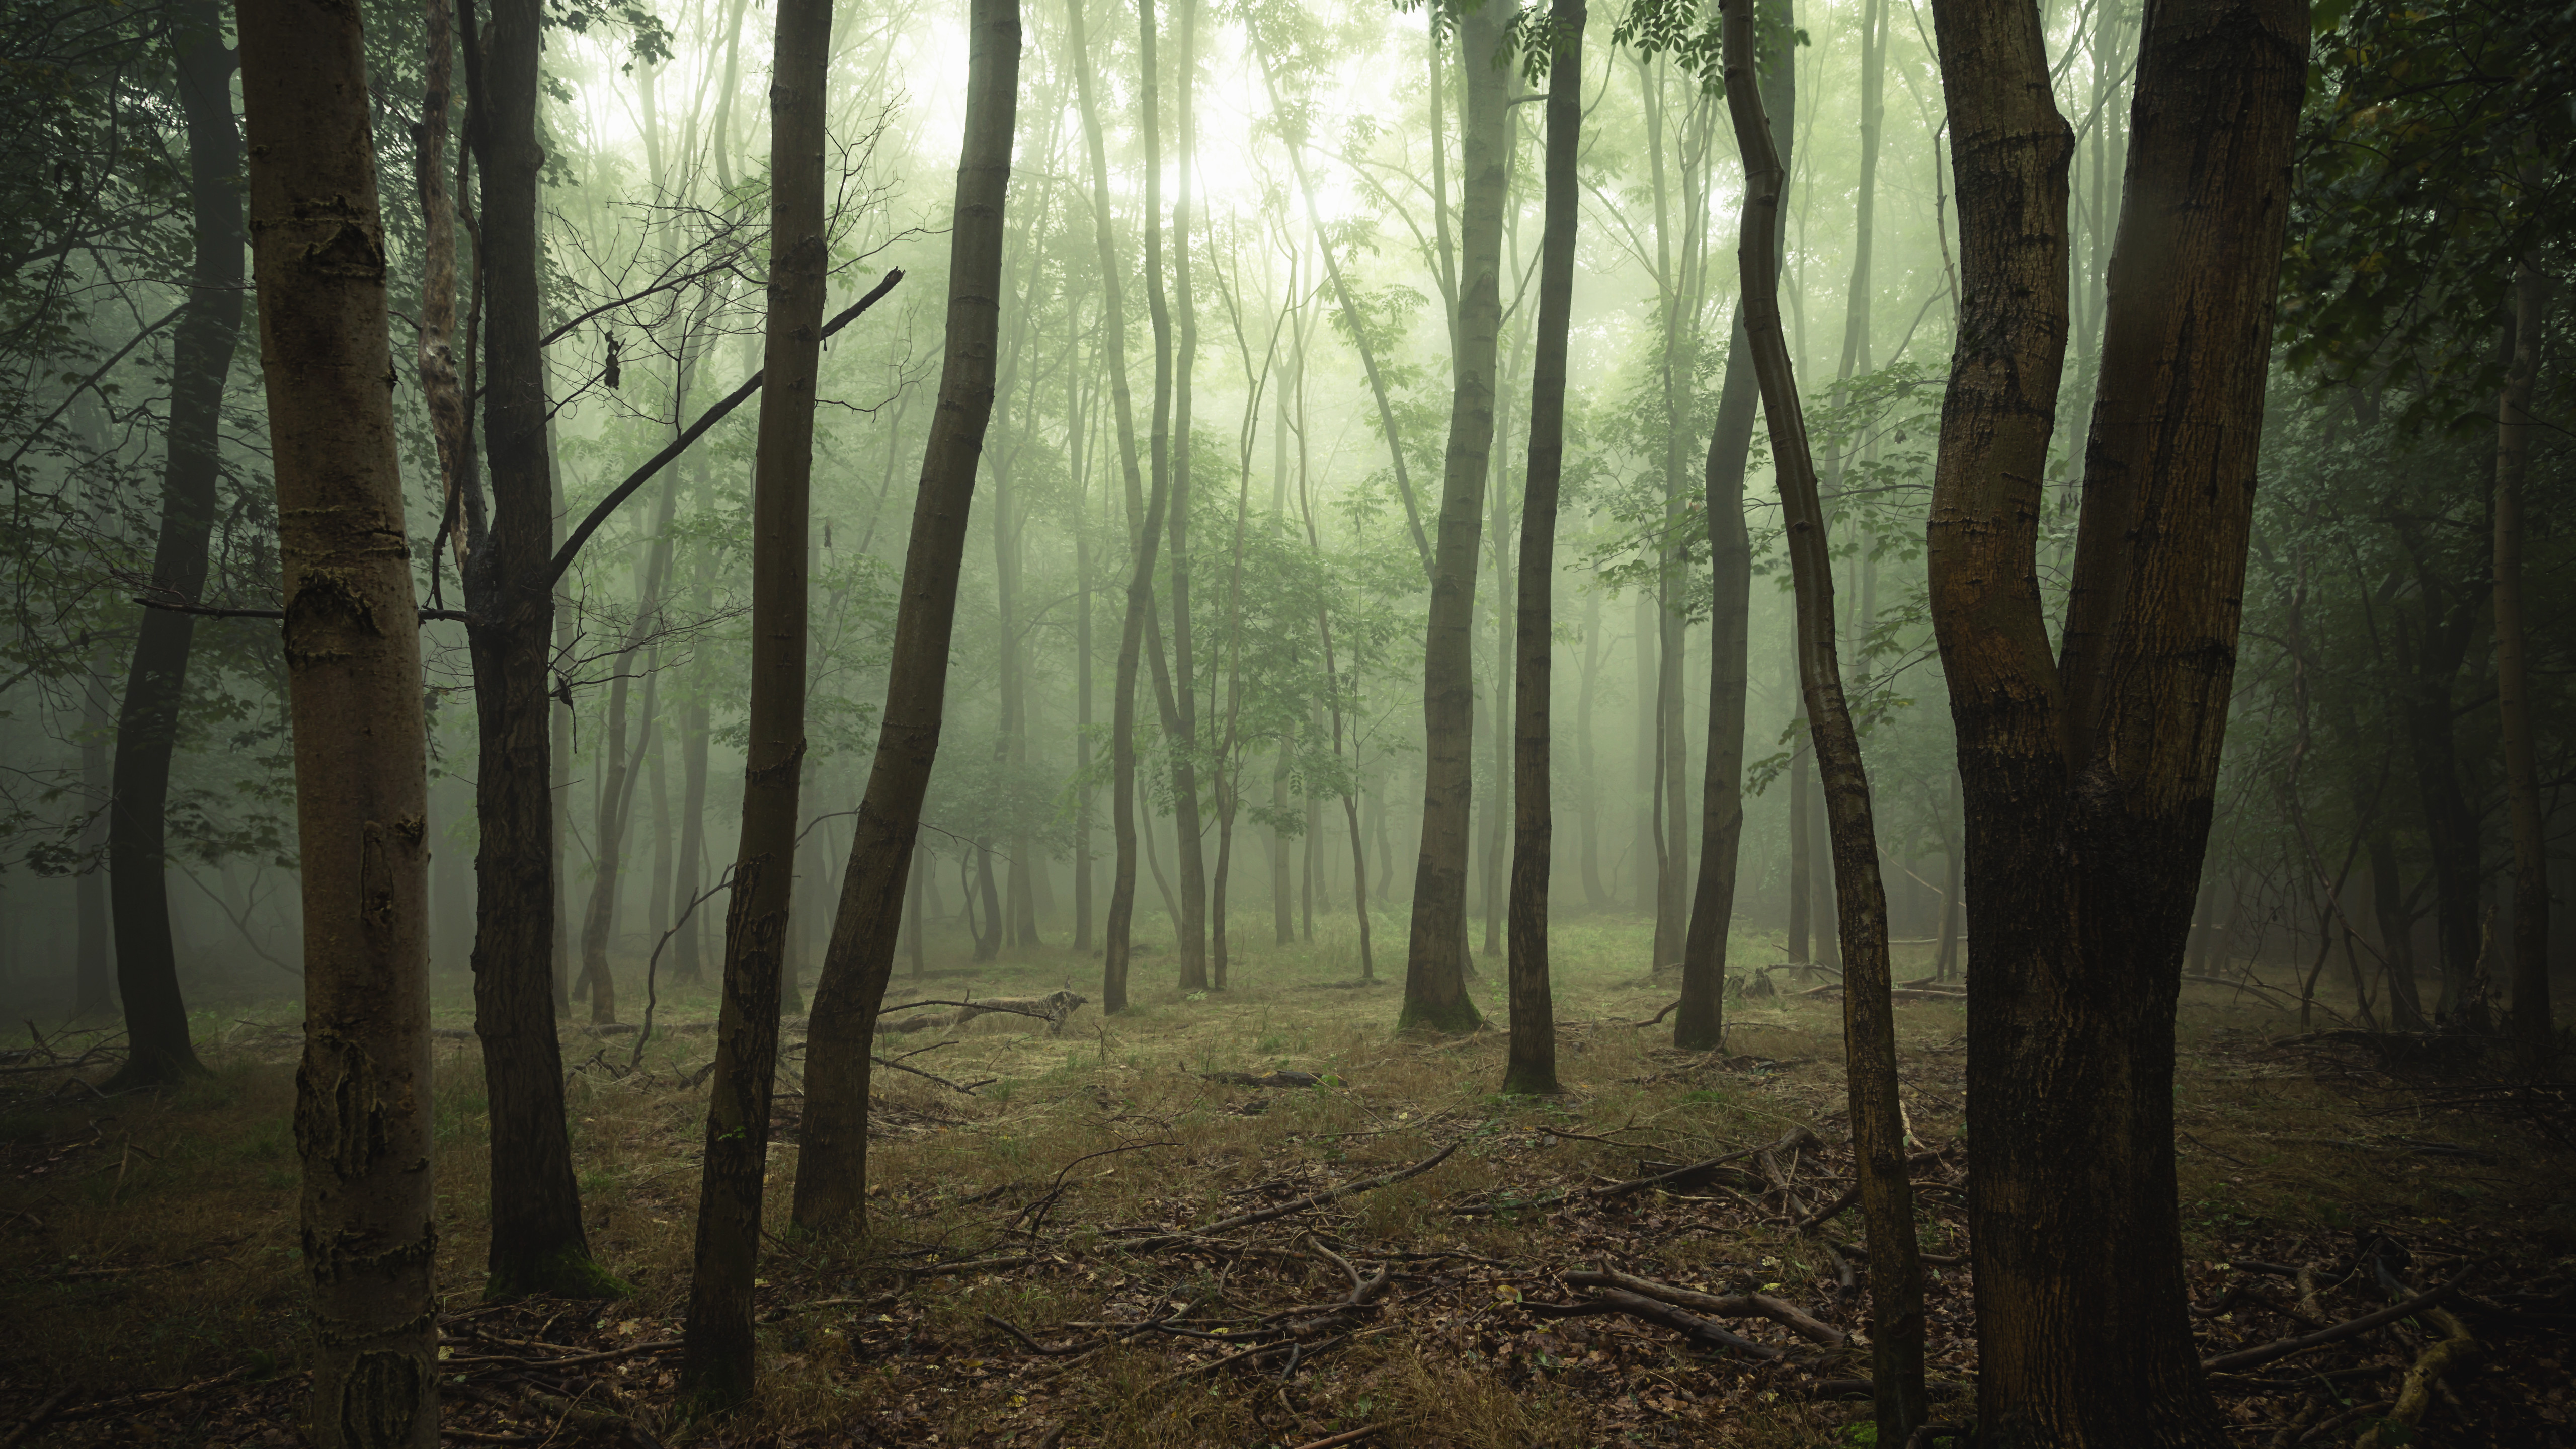 155886 download wallpaper Nature, Forest, Trees, Fog, Branches screensavers and pictures for free